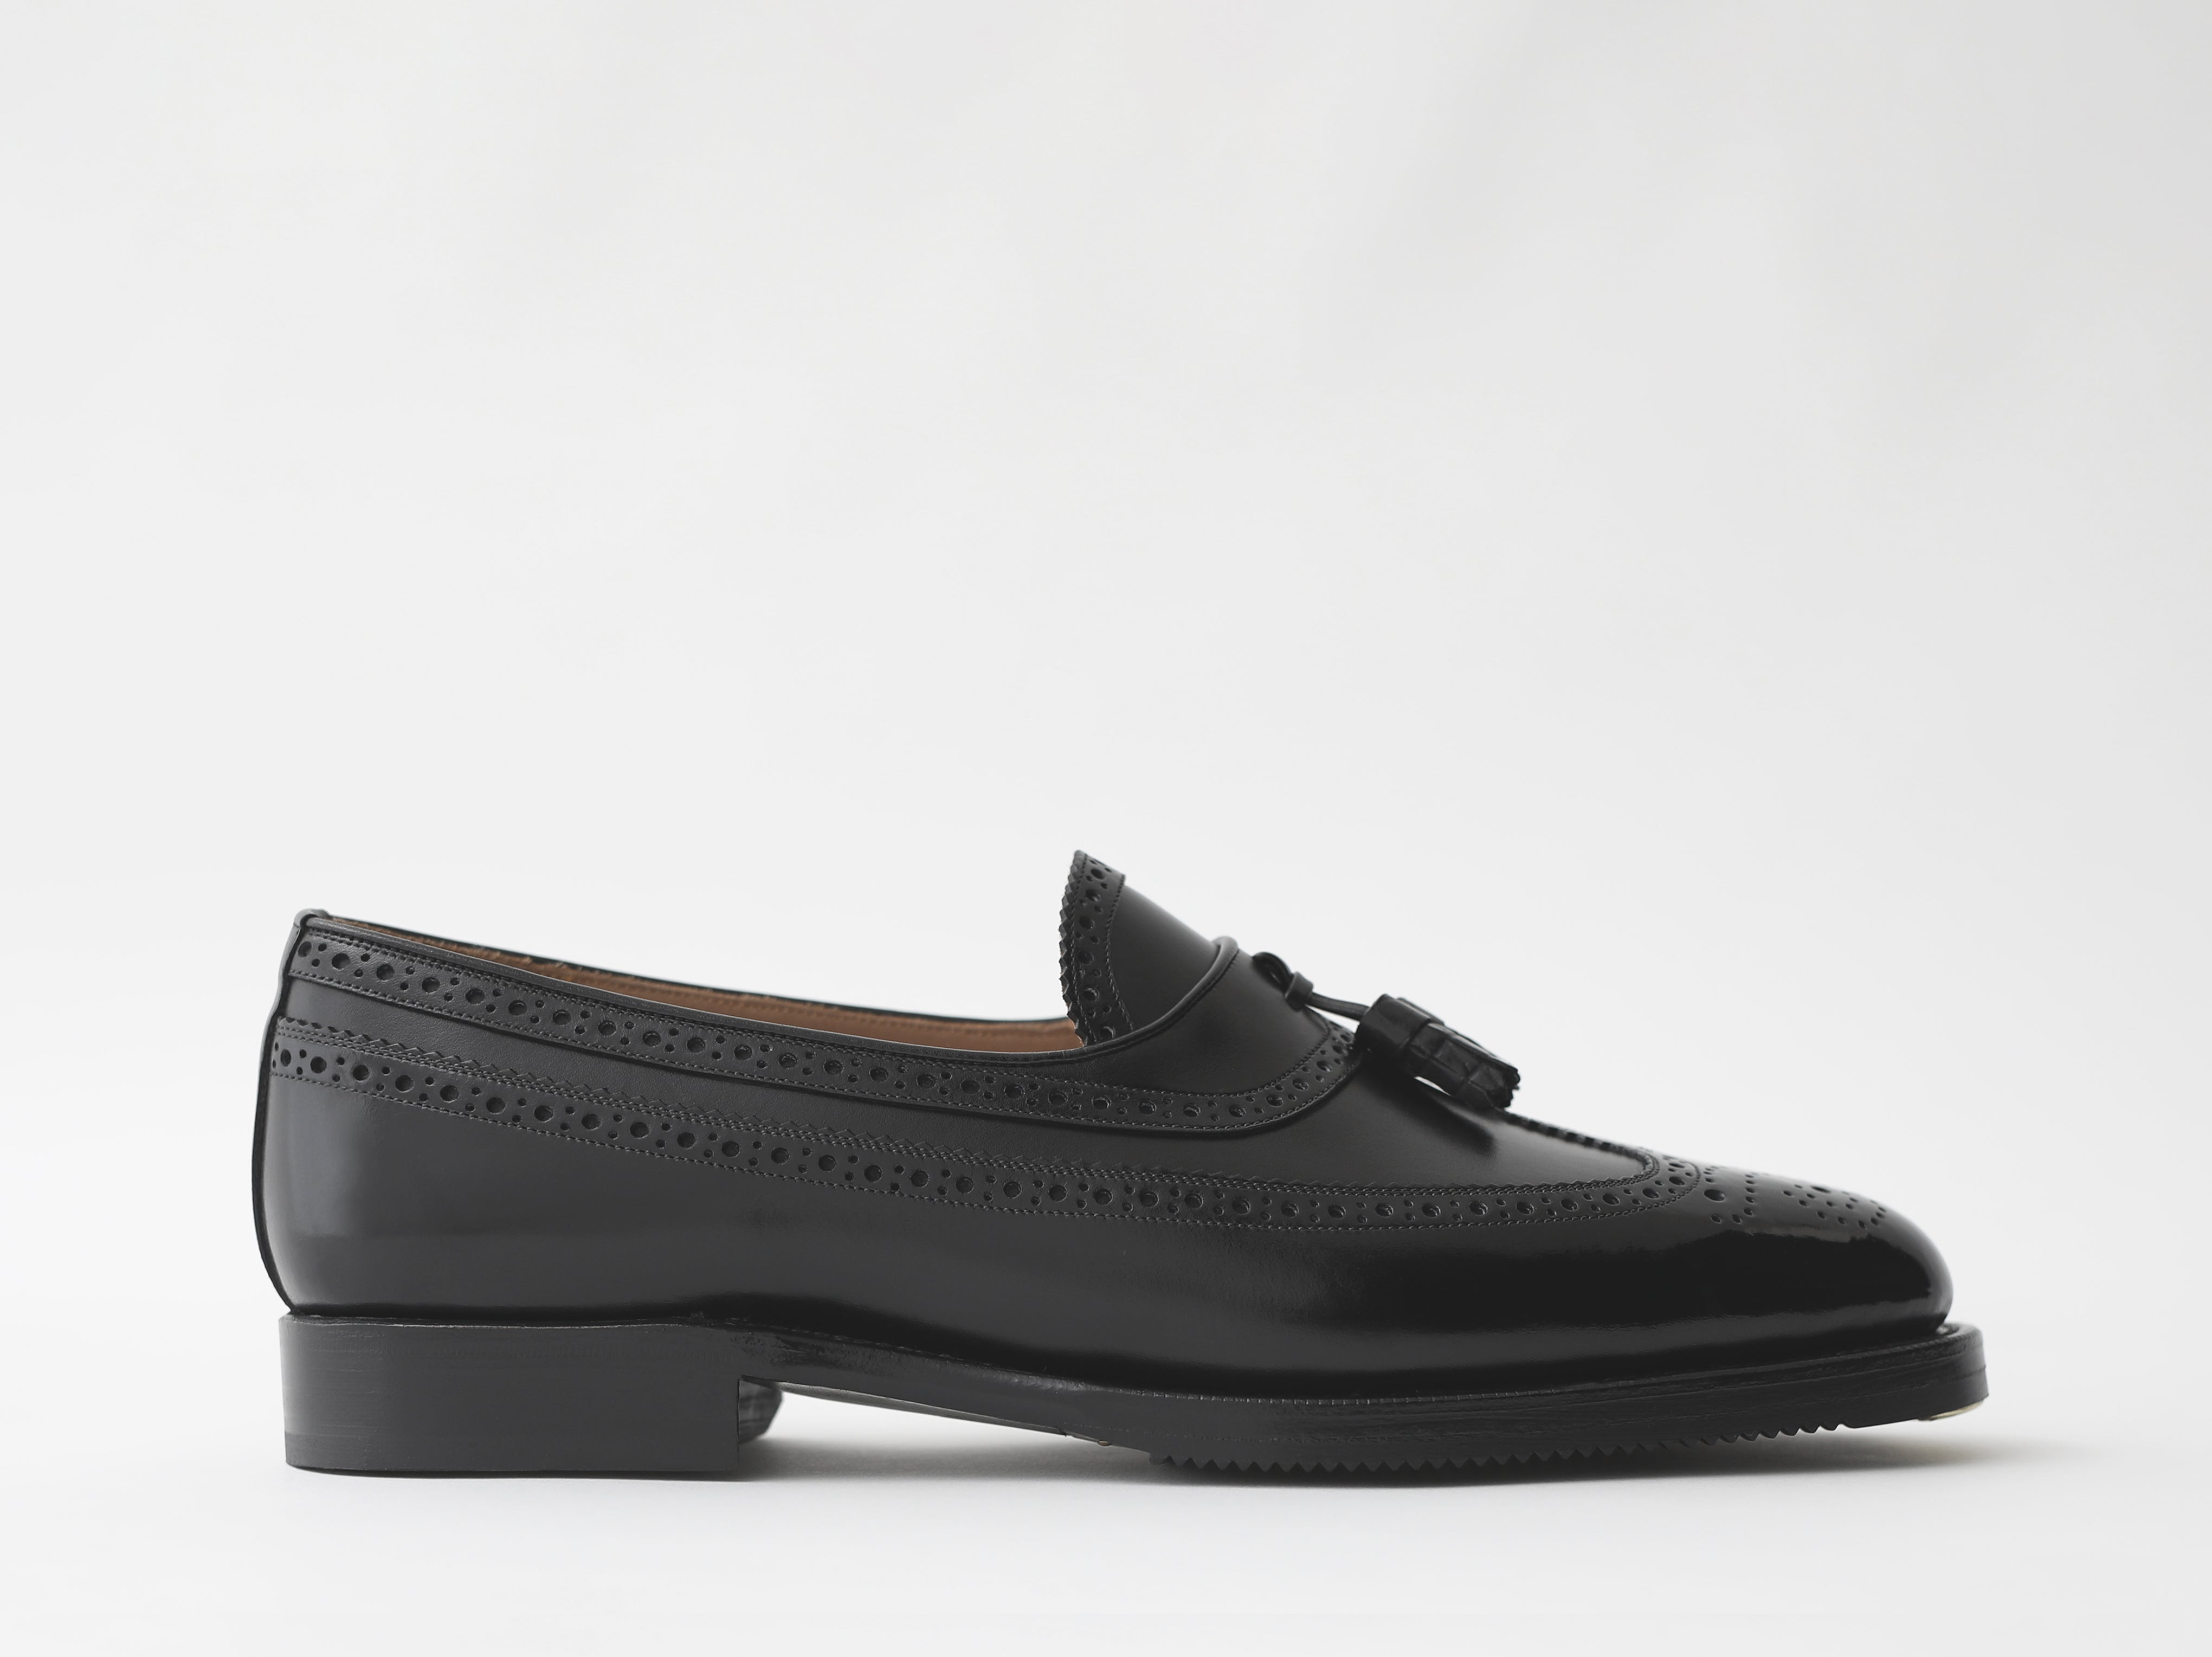 33.STYLE. A6250 TASSEL.LOAFER